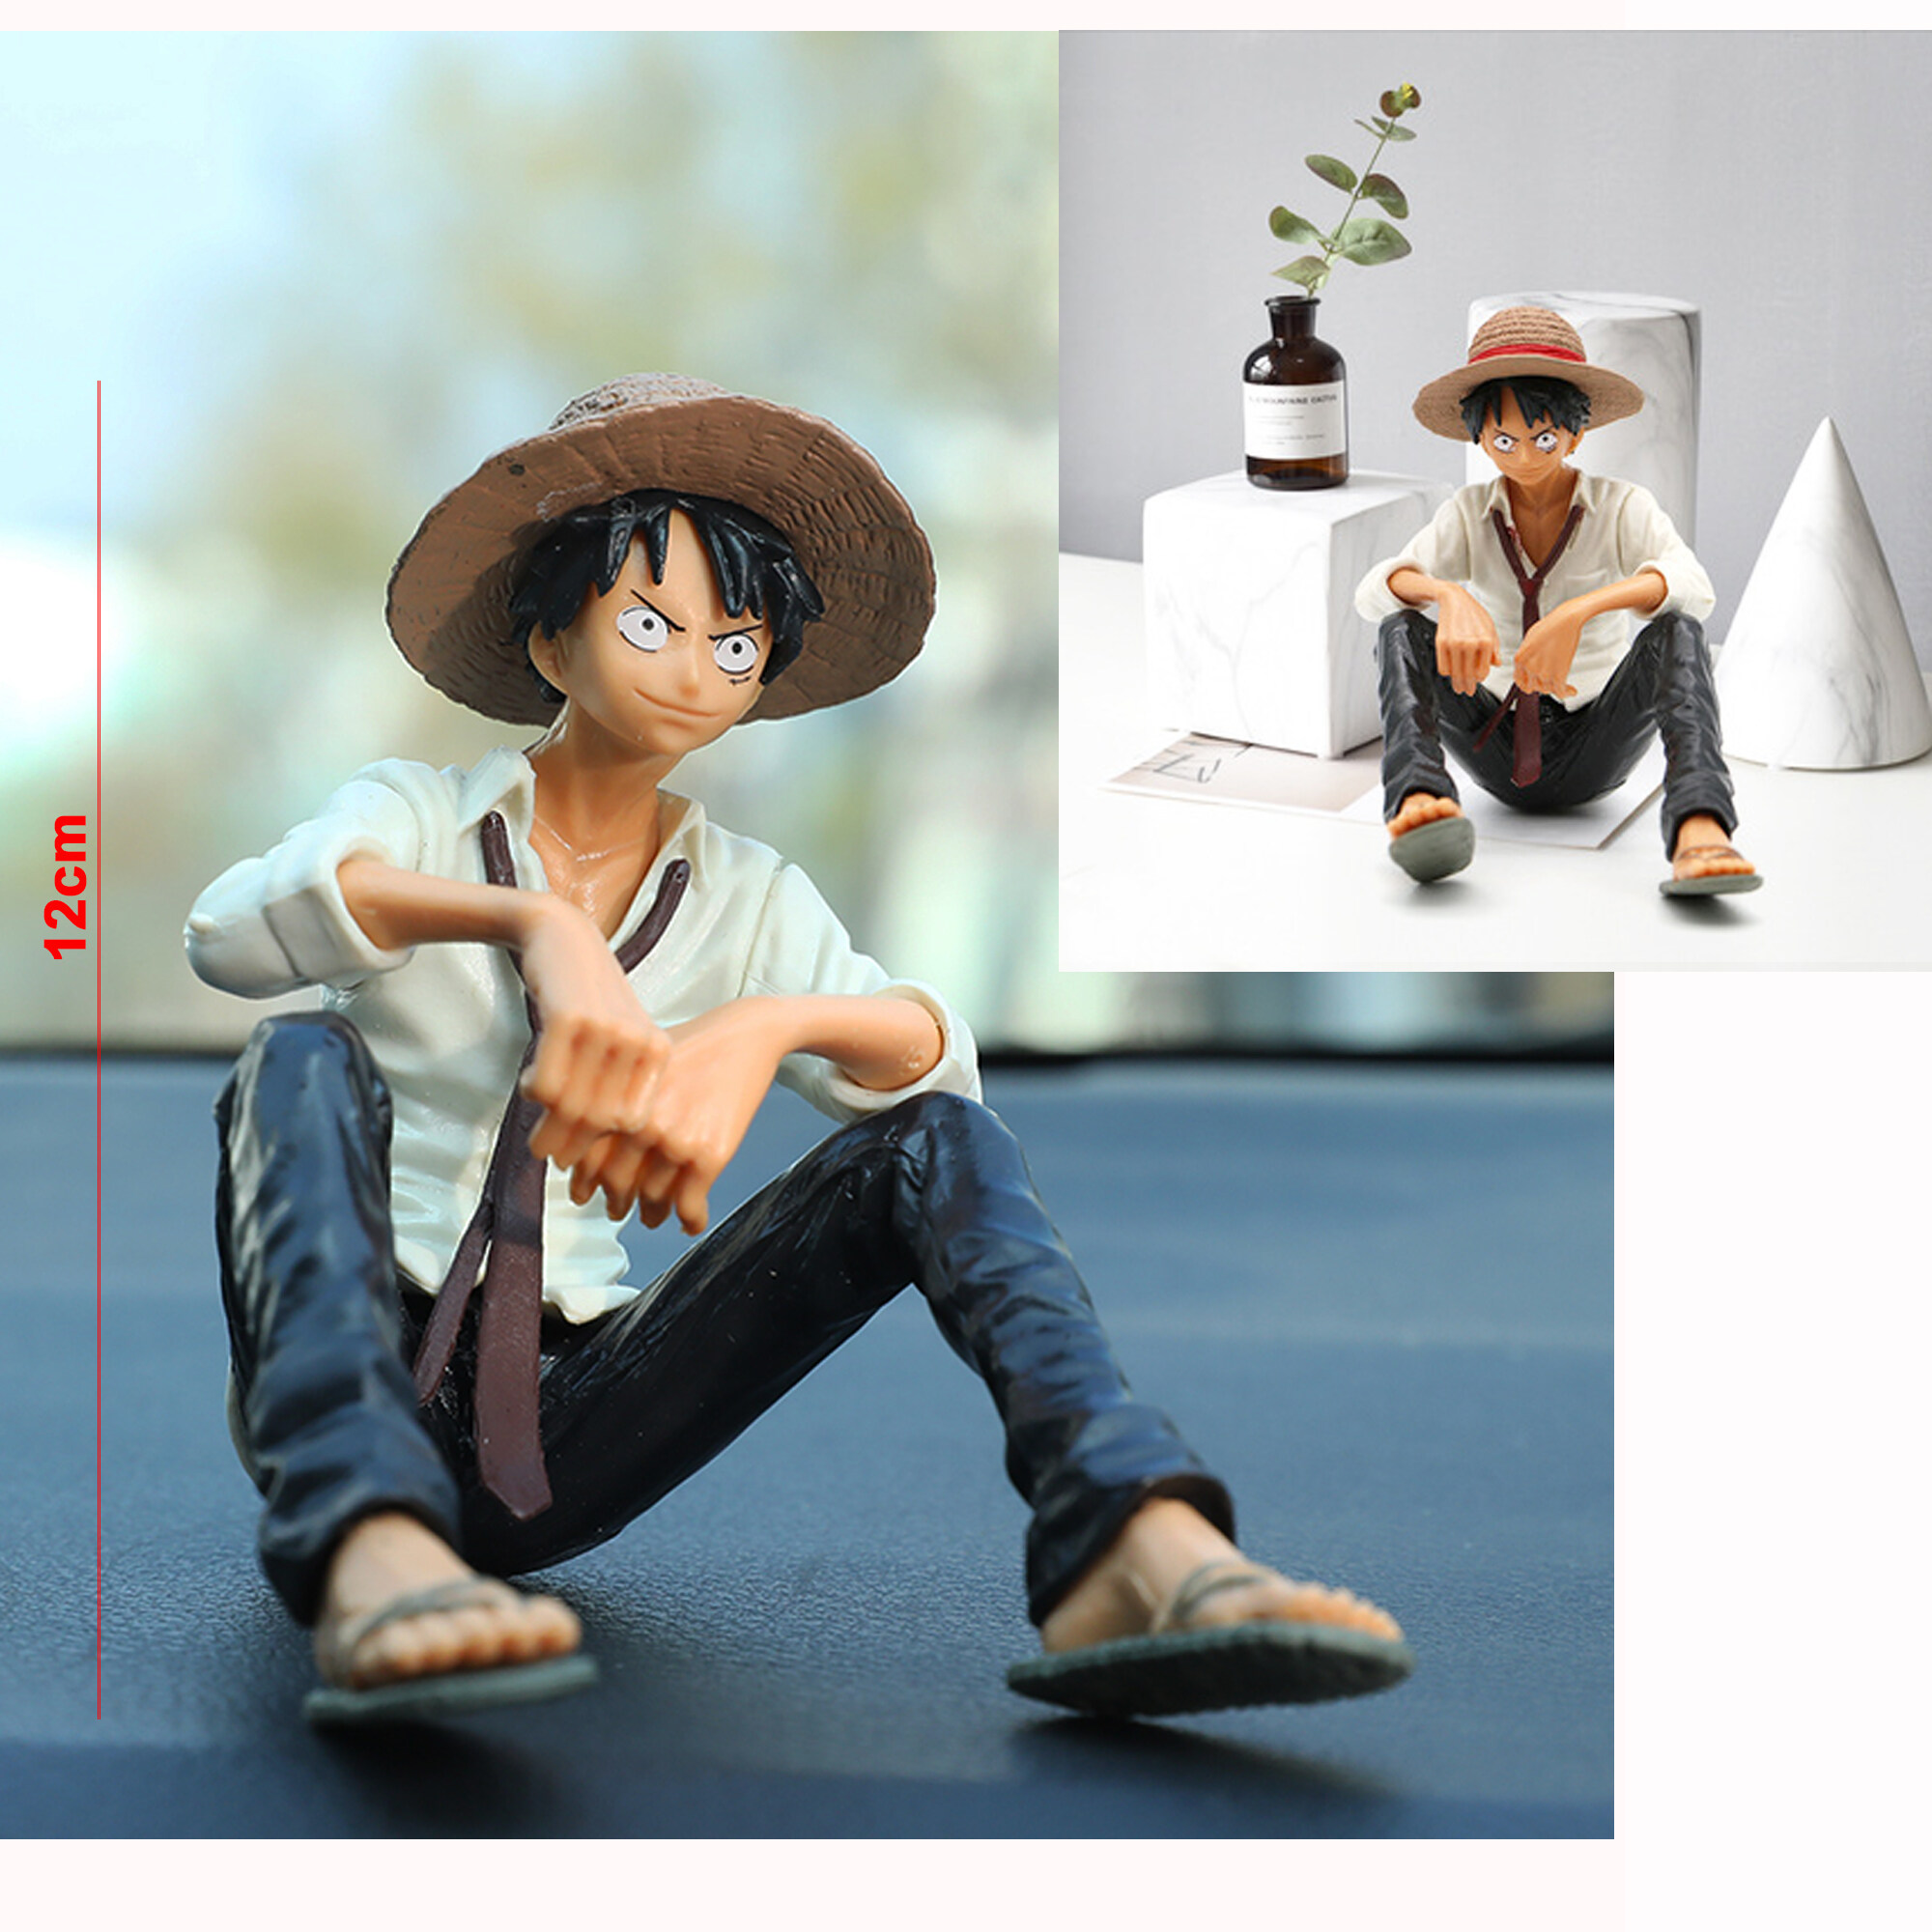 Pre-order: Anime One piece Luffy Action Figure Model Toy Collectible for Car decoration Computer Case decoration